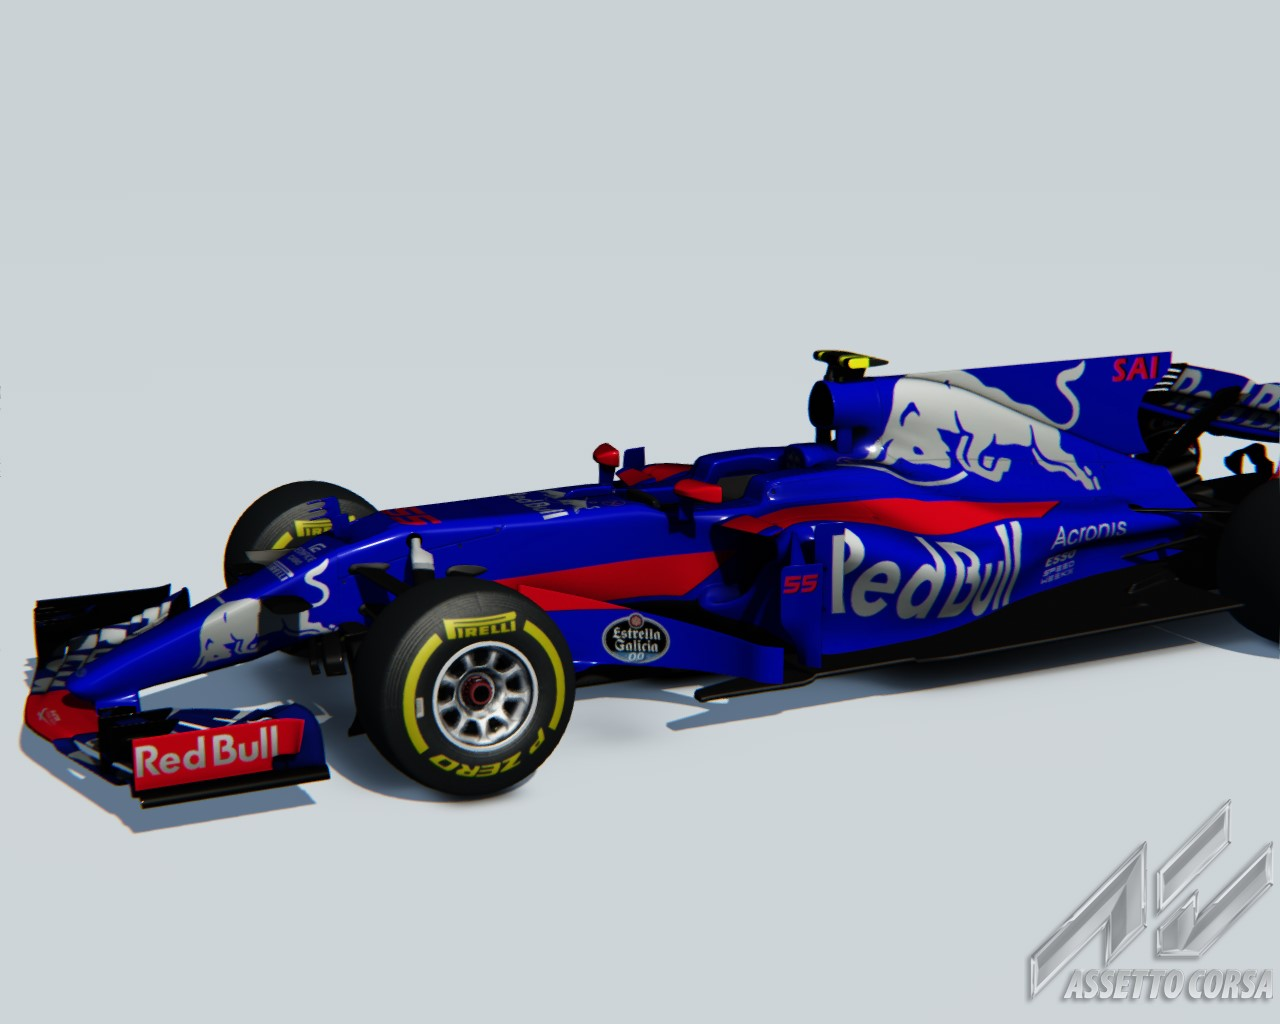 Showroom_acfl_2017_tororosso_13-5-2017-21-15-46.jpg